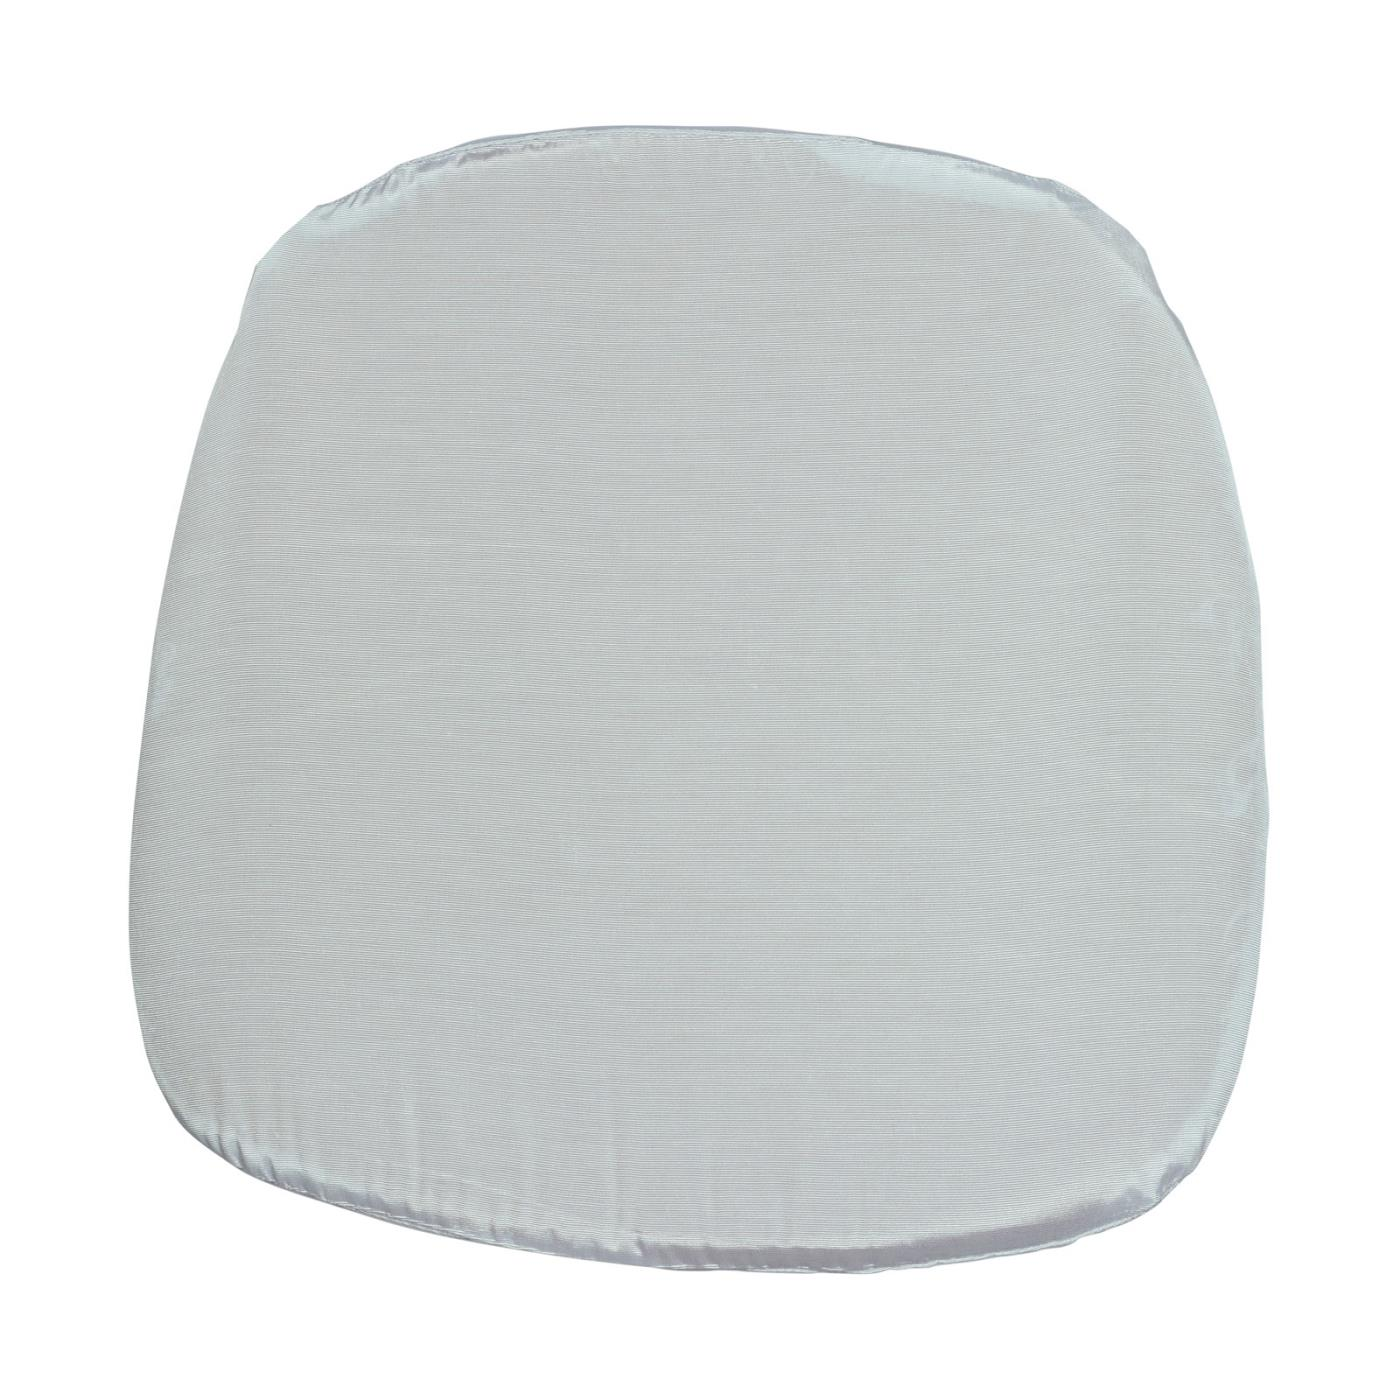 Bengaline Seat Cushion - White